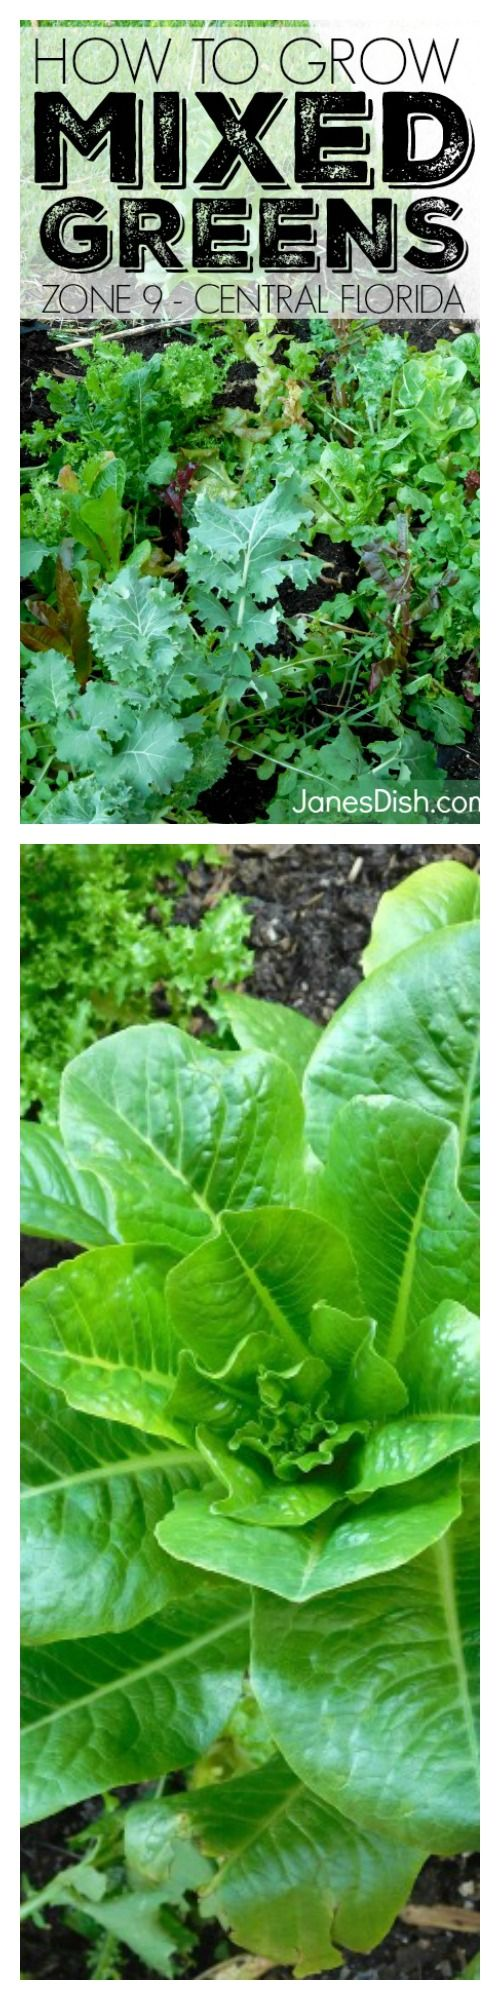 Beginner how-to guide for growing mixed greens in Zone 9!   http://www.janesdish.com/growing-mixed-greens-central-florida-zone-9/